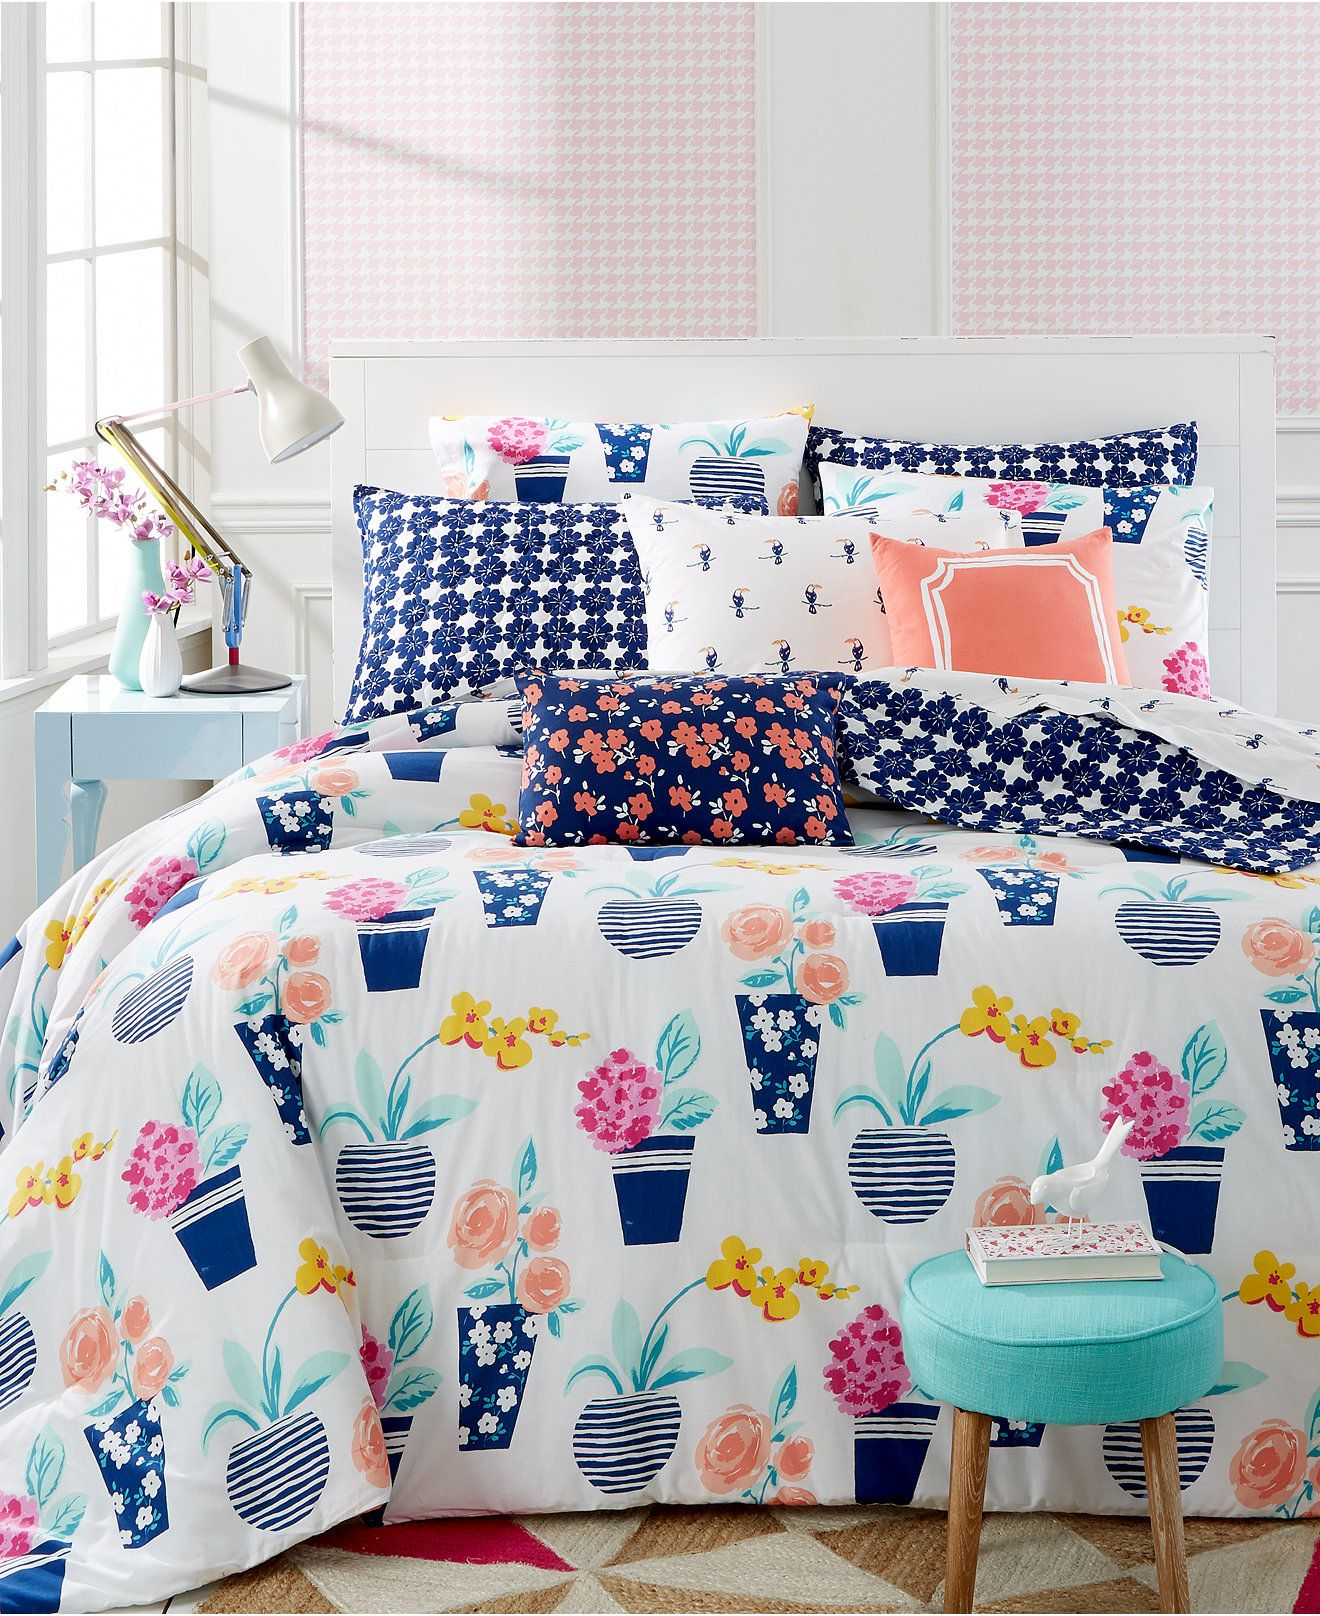 Whim by martha stewart collection pretty in pots 5 pc comforter sets whim collection bed Martha stewart bathroom collection